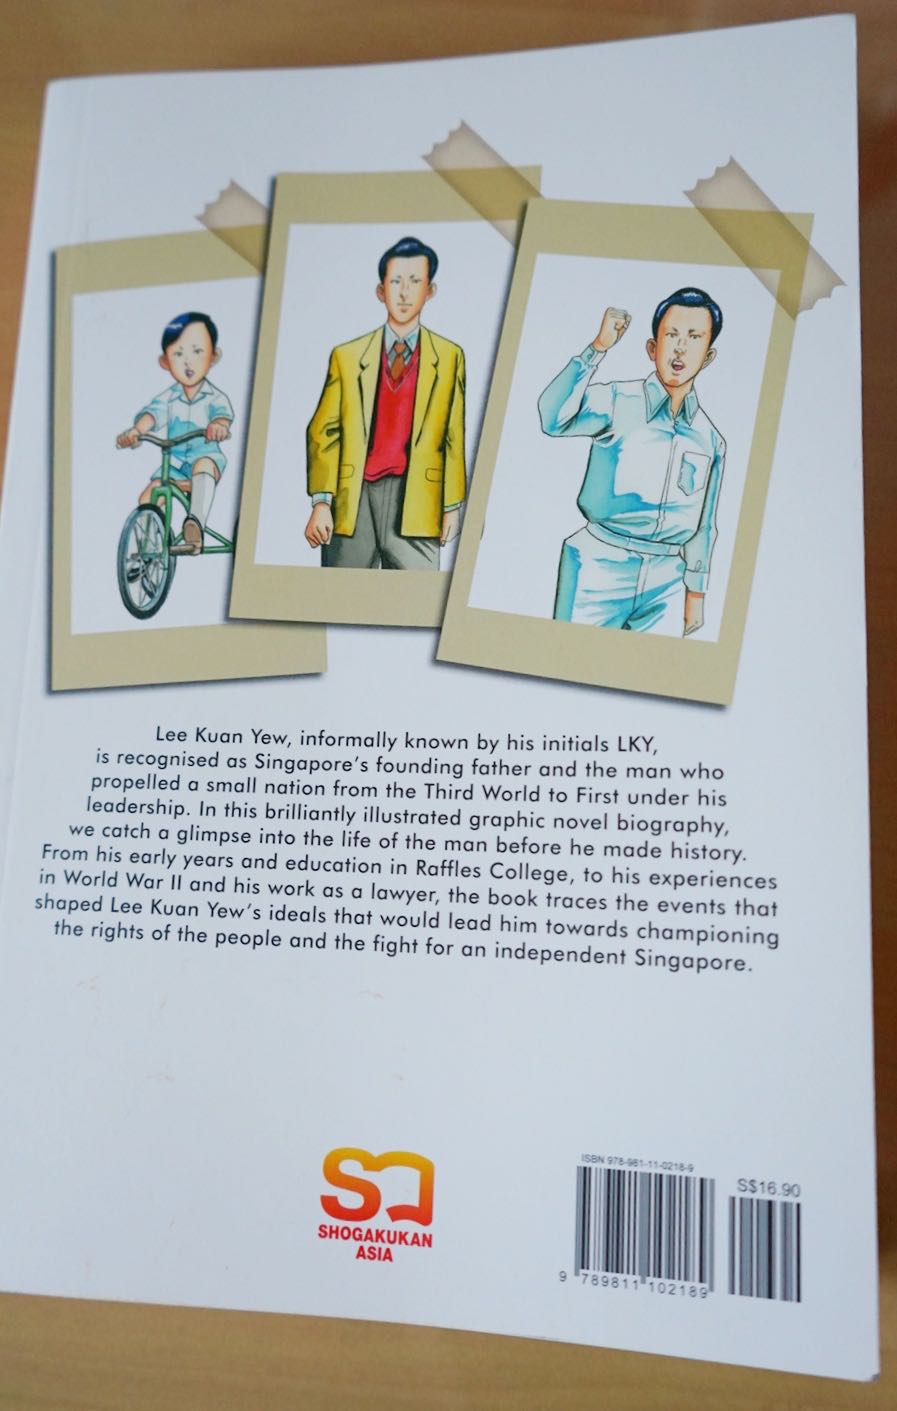 the-lky-story-lee-kuan-yew-aspirantsg